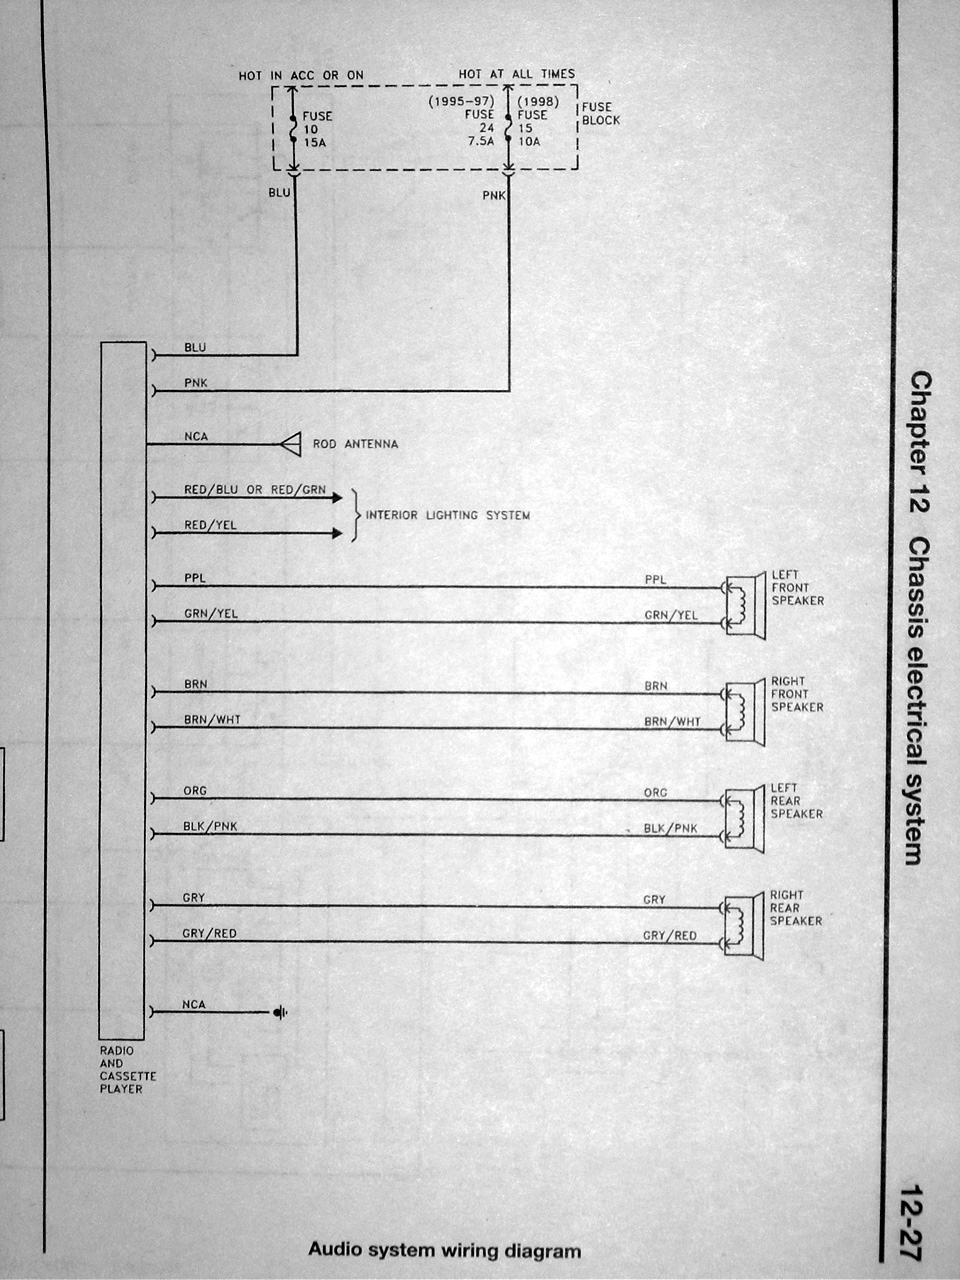 1995 Nissan Stereo Wiring Diagram Modern Design Of 94 Pathfinder Radio Altima Simple Schema Rh 38 Aspire Atlantis De Pulsar